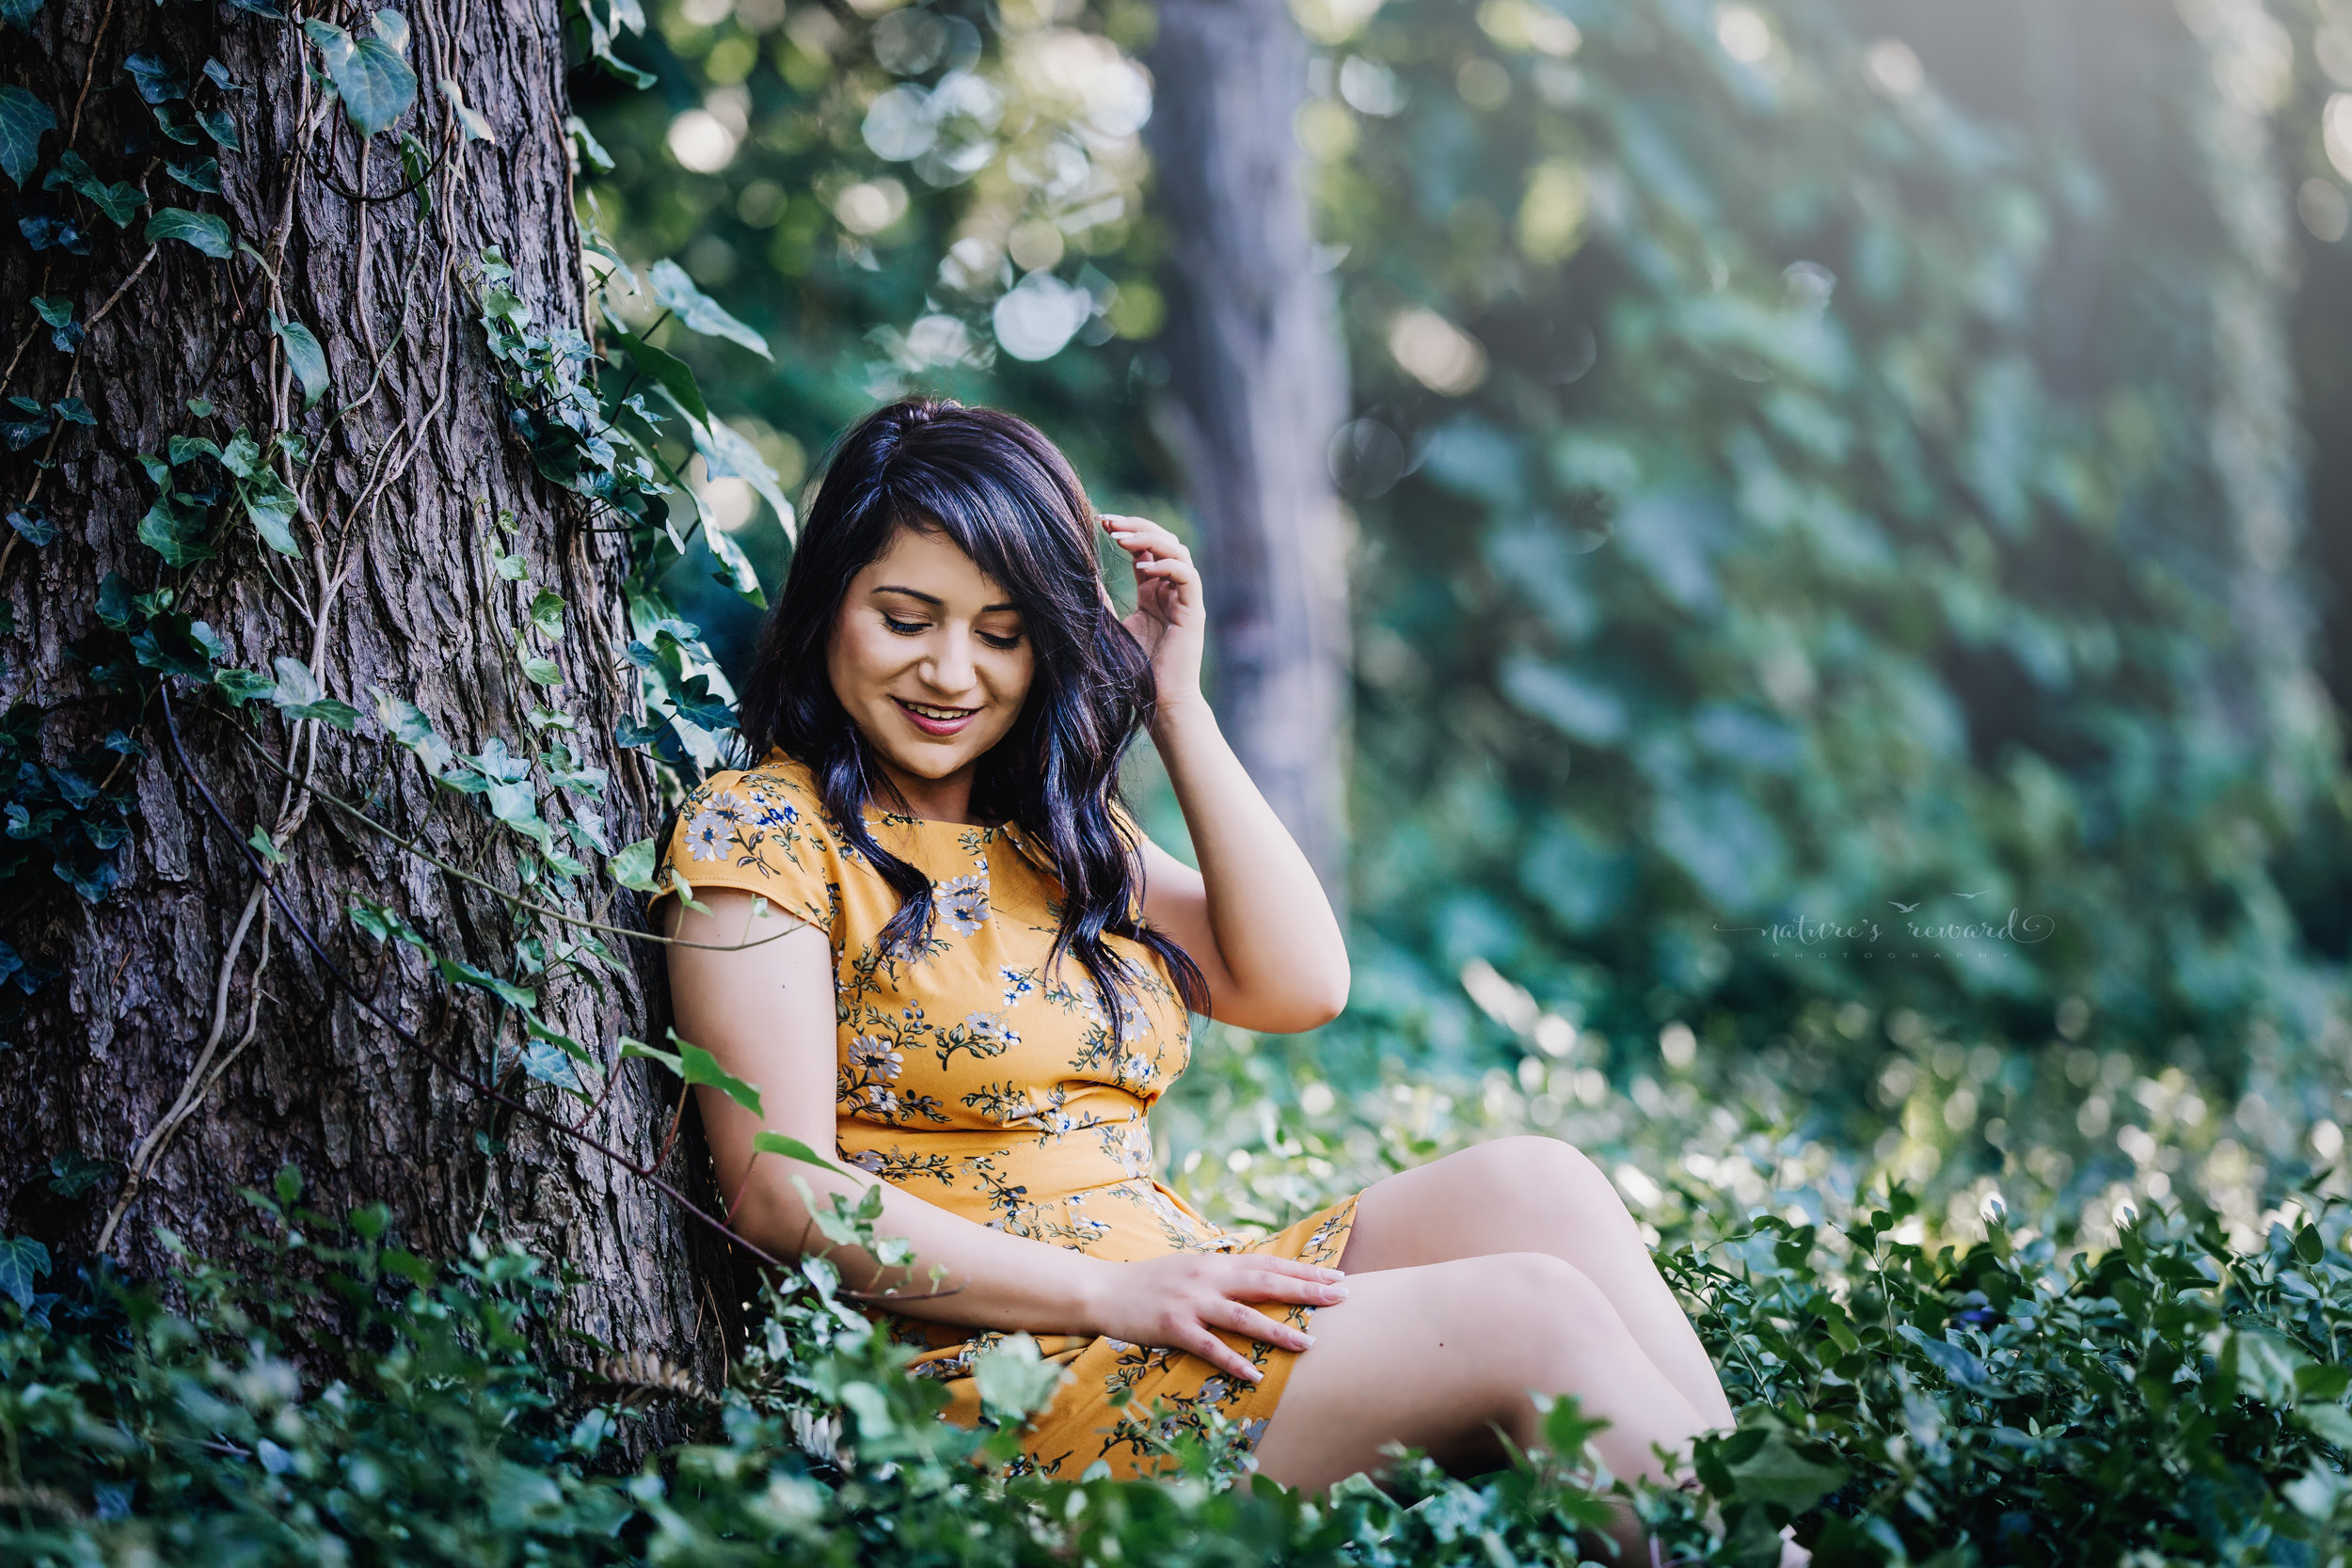 Class of 2018, California State University, San Bernardino Graduate wearing a yellow dress surrounded by the lush green of a park in Redlands, California in this Senior Portrait by Nature's Reward Photography.